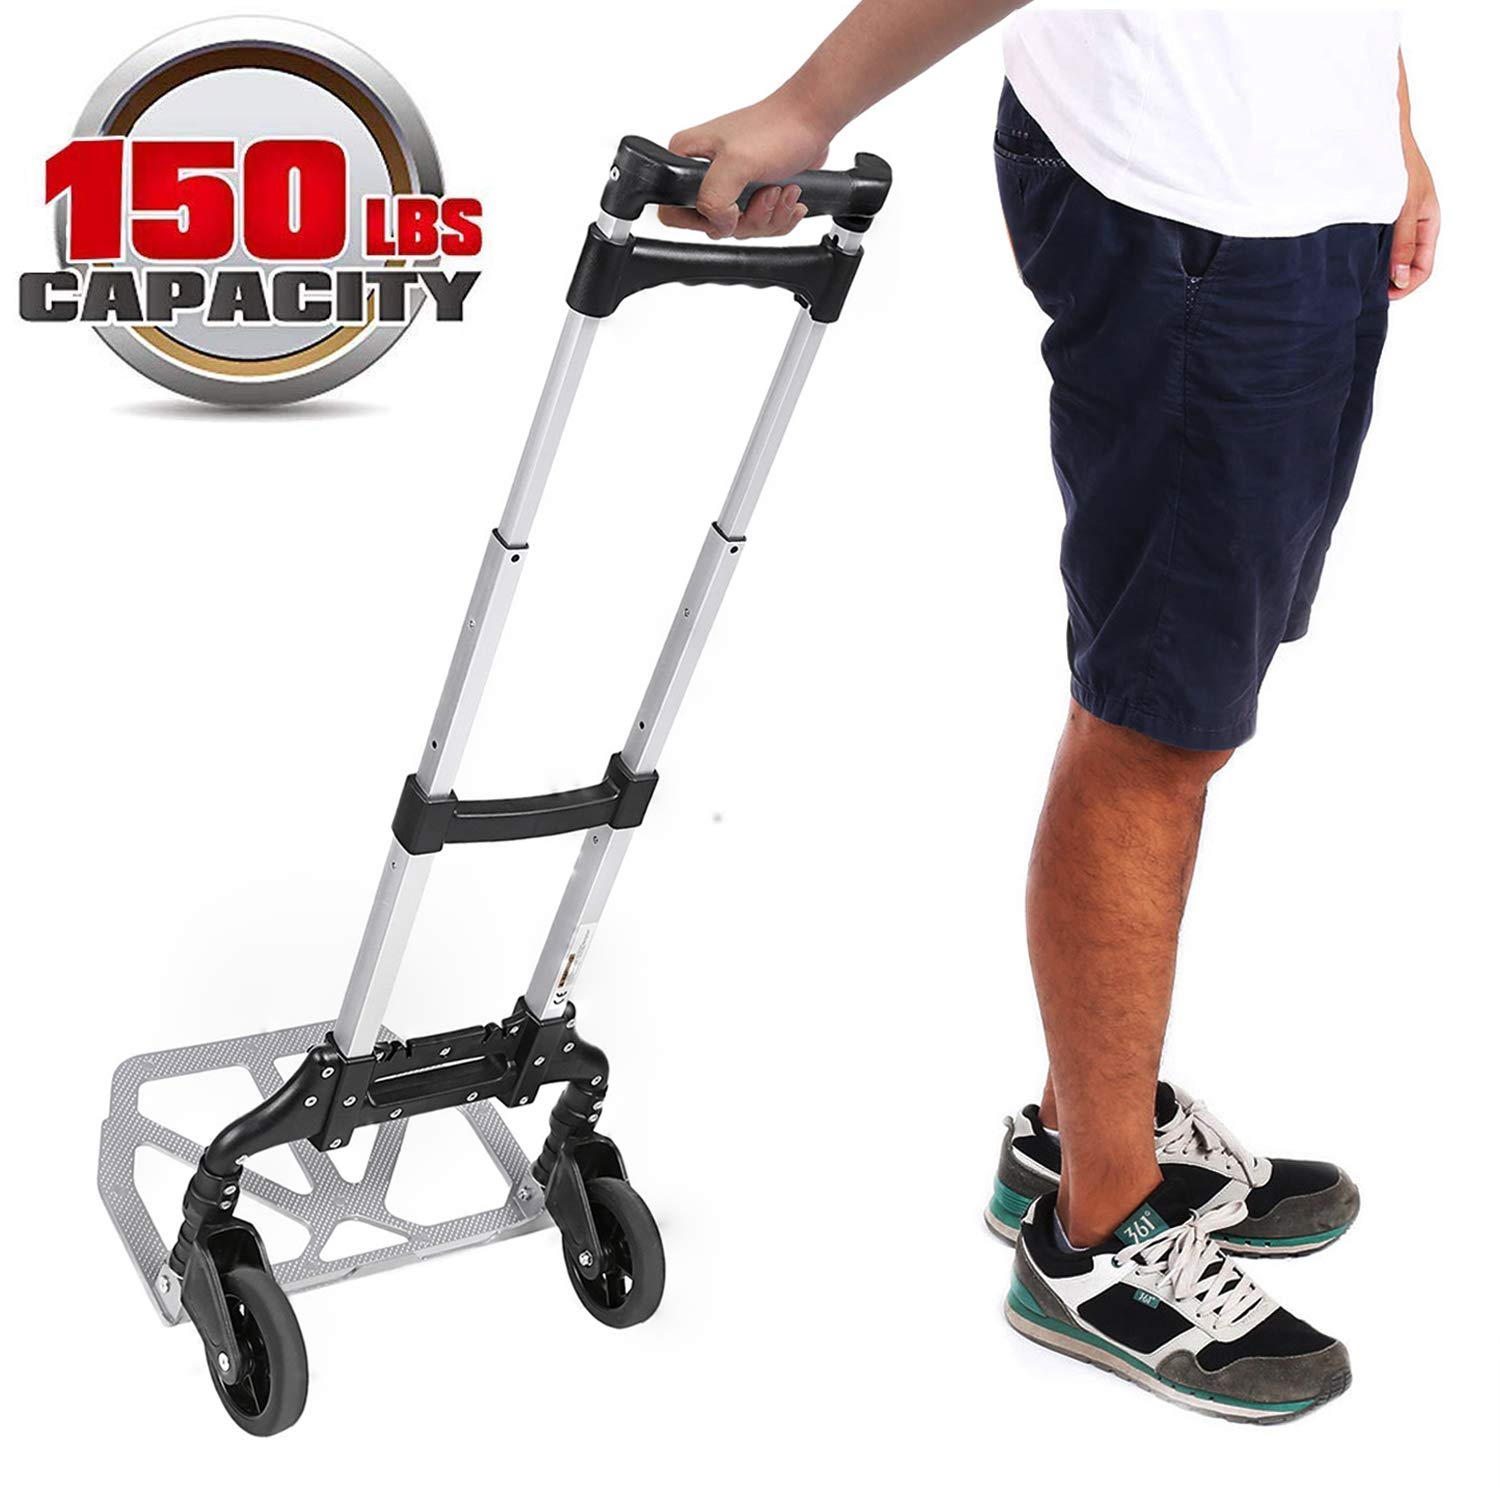 Kemanner Portable Heavy Duty Aluminum Folding Hand Truck and Dolly Two-Wheel Luggage Cart for Personal, Moving, Travel and Shopping Use - Support 150lbs Capacity